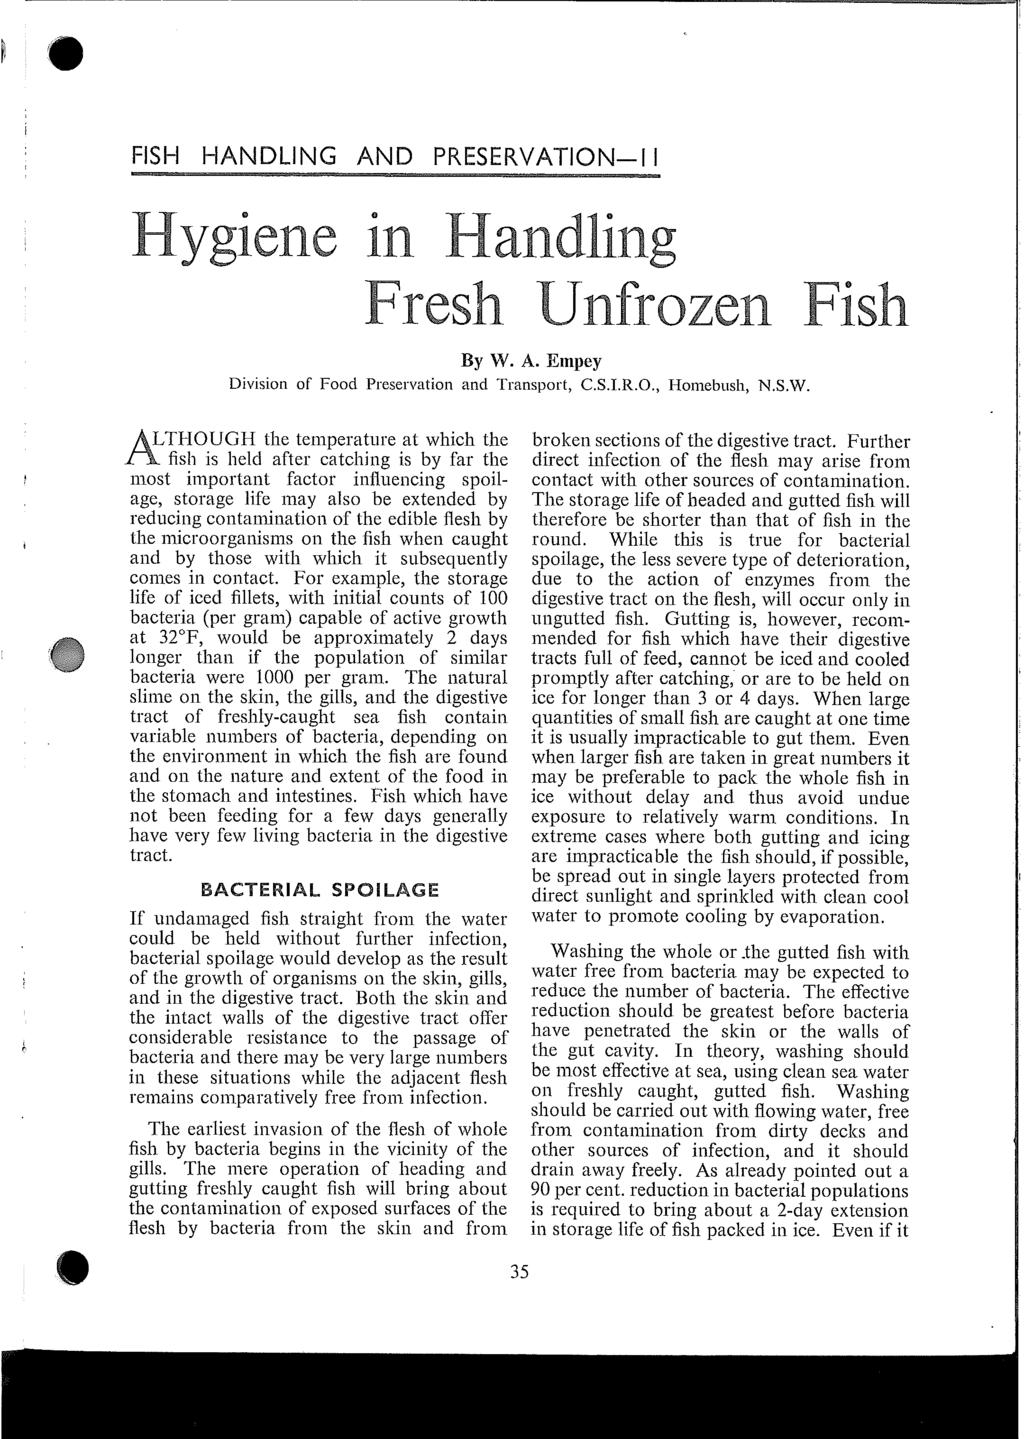 FISH HANDLING AND PRESERVATION-I I Hygiene in Nand Fresh Unfrozen Fish By W.